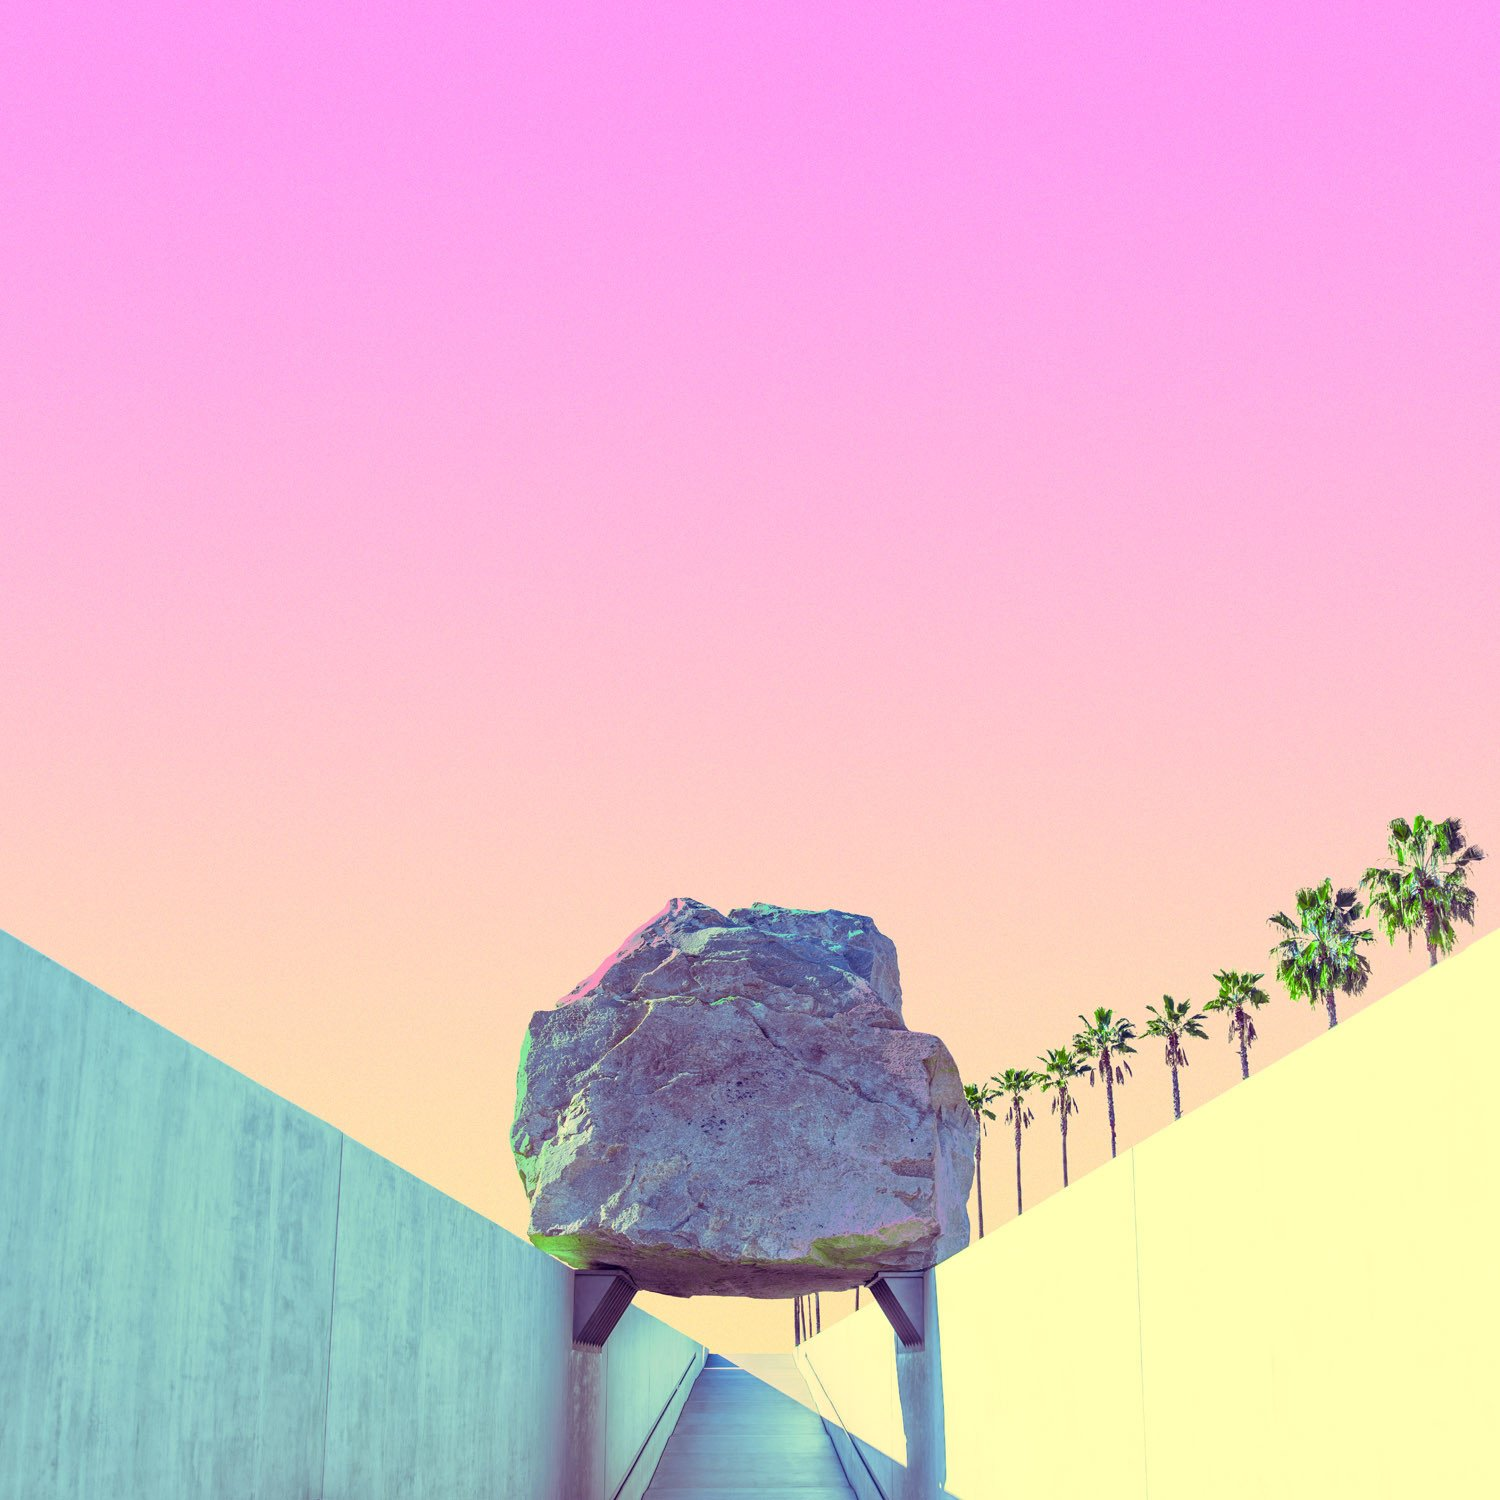 Matt Crump - Levitated Mass, minus37